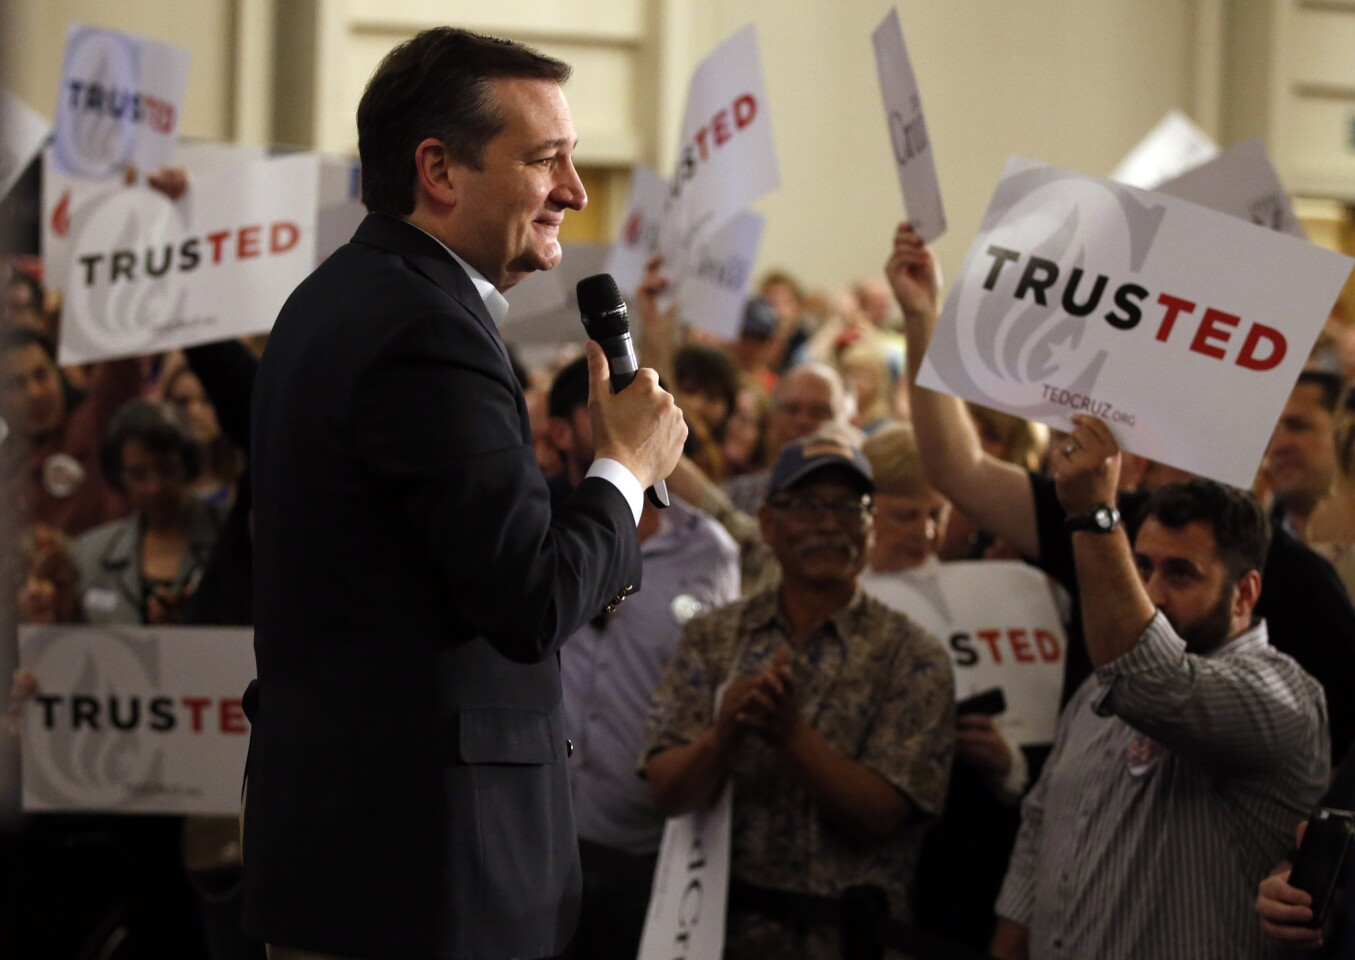 Republican presidential candidate Ted Cruz smiles at the enthusiastic crowd of supporters during his rally at the Hotel Irvine on April 11.